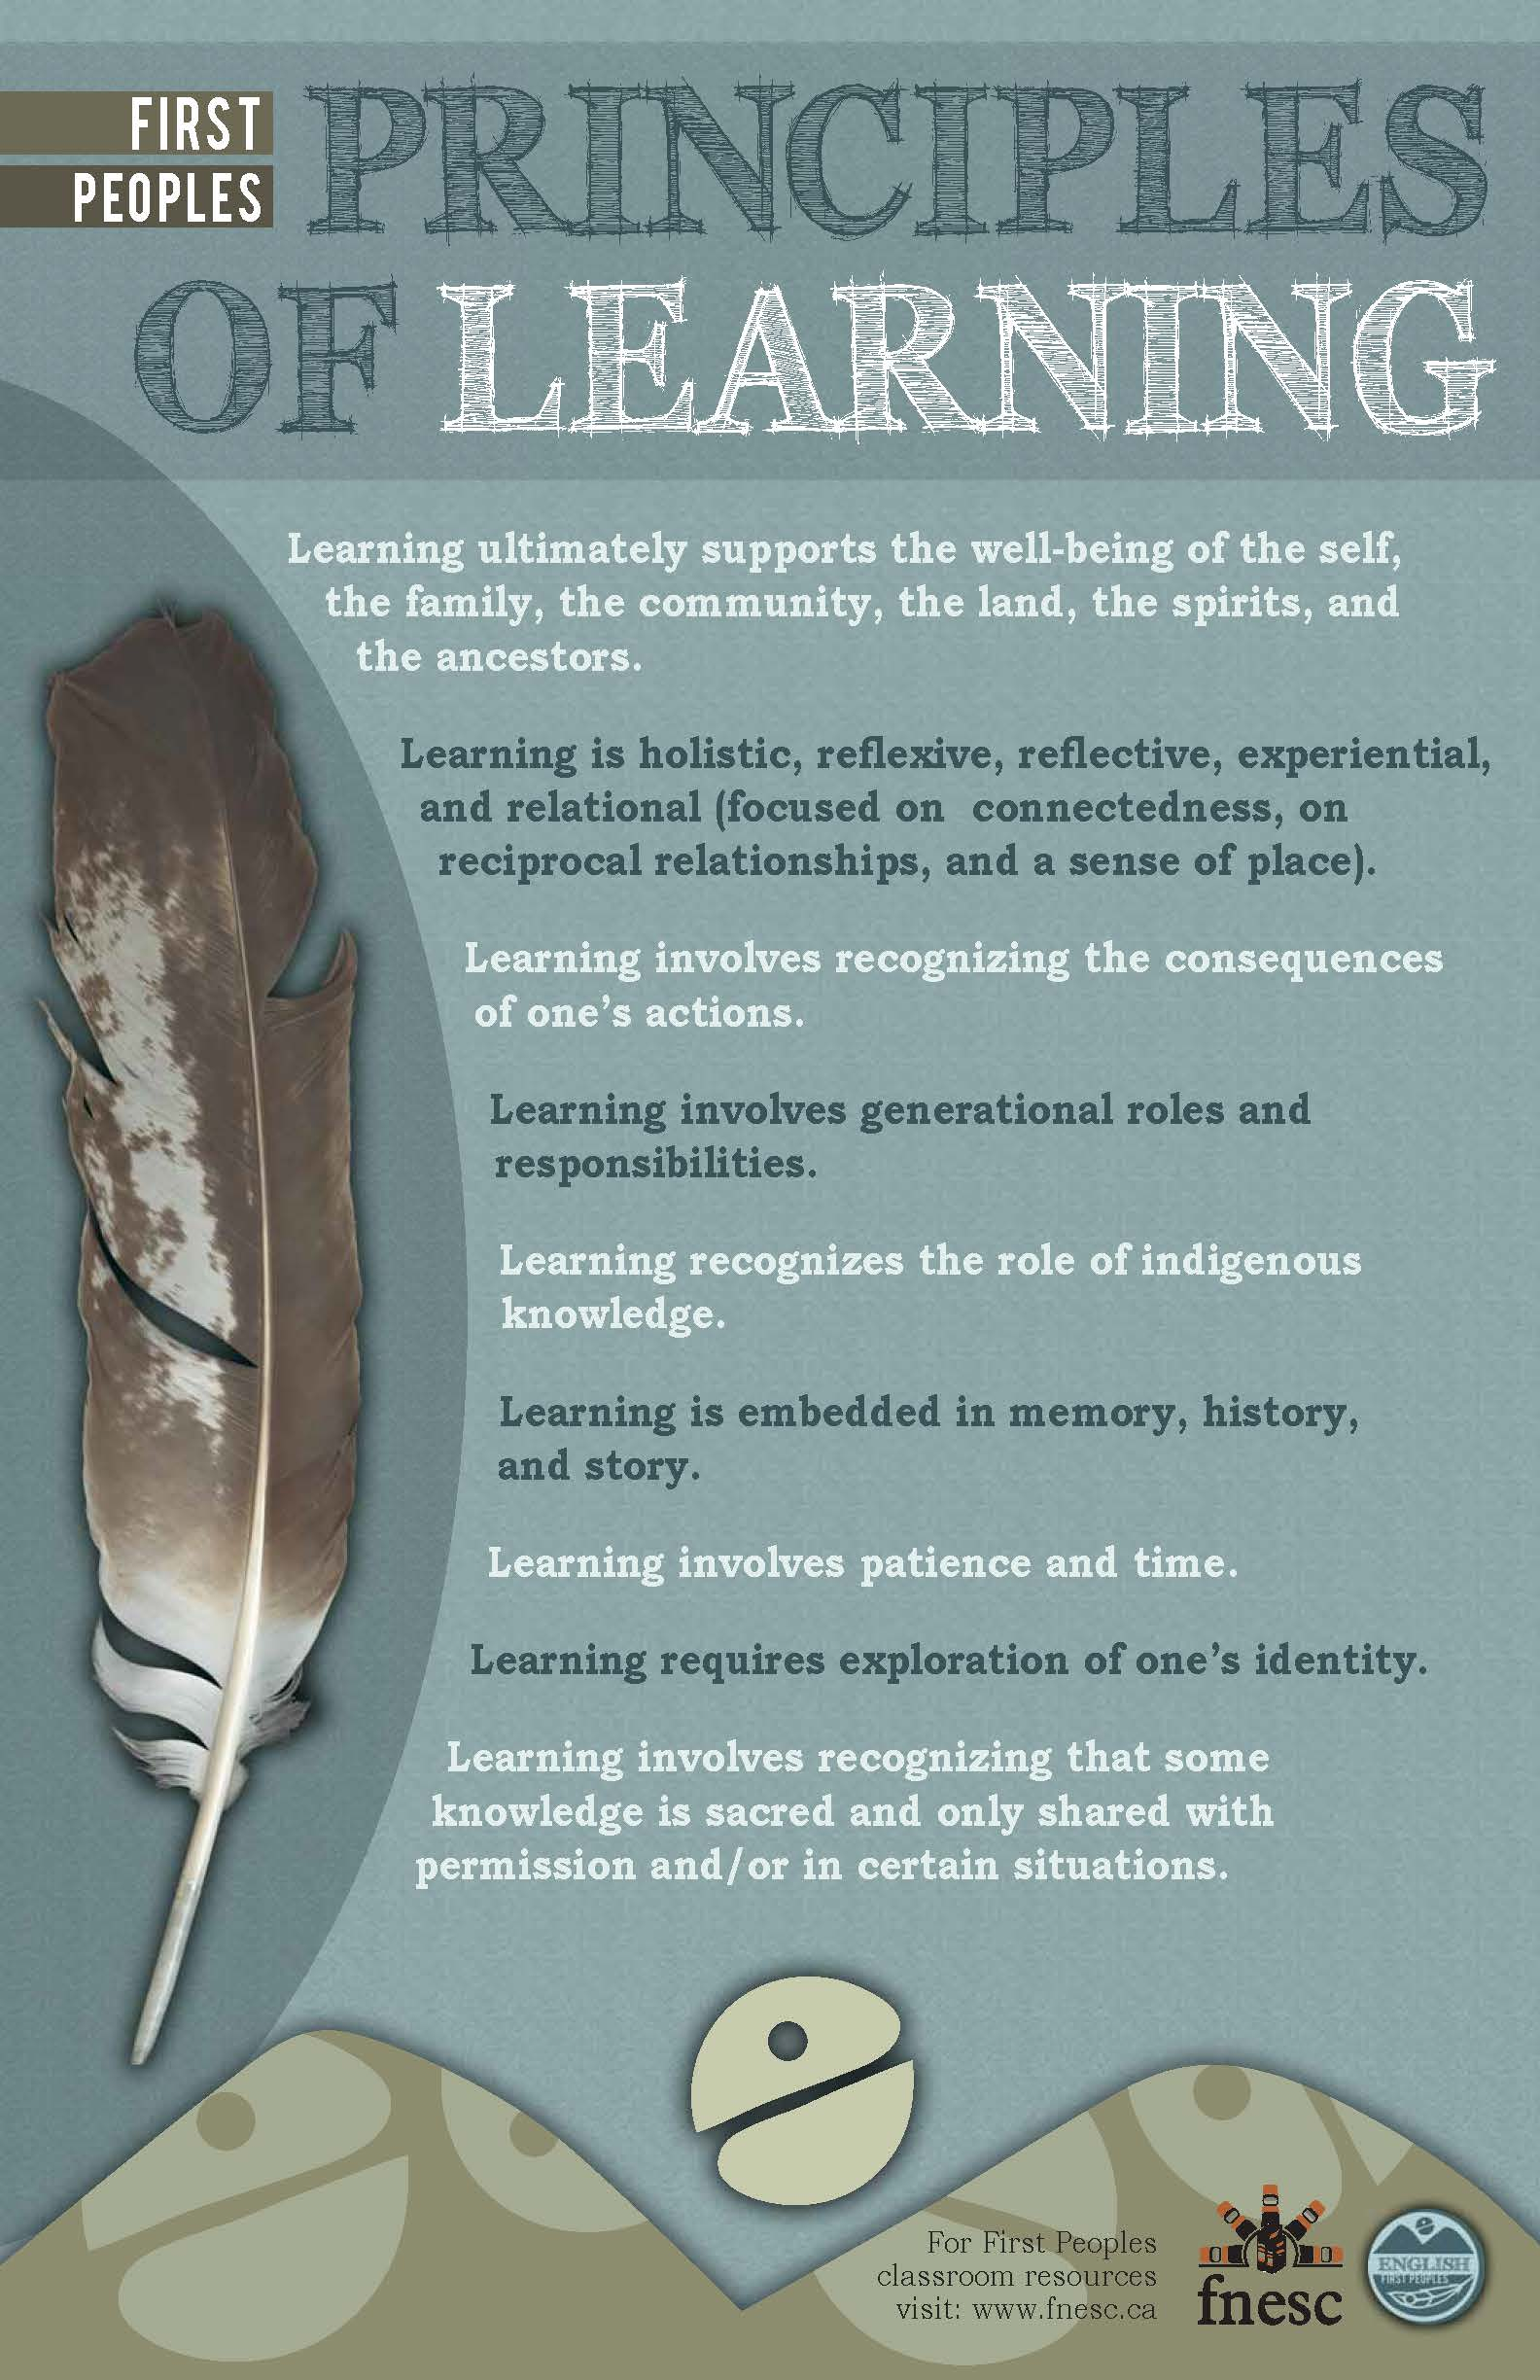 Principles of Learning First Peoples poster   Edward Milne